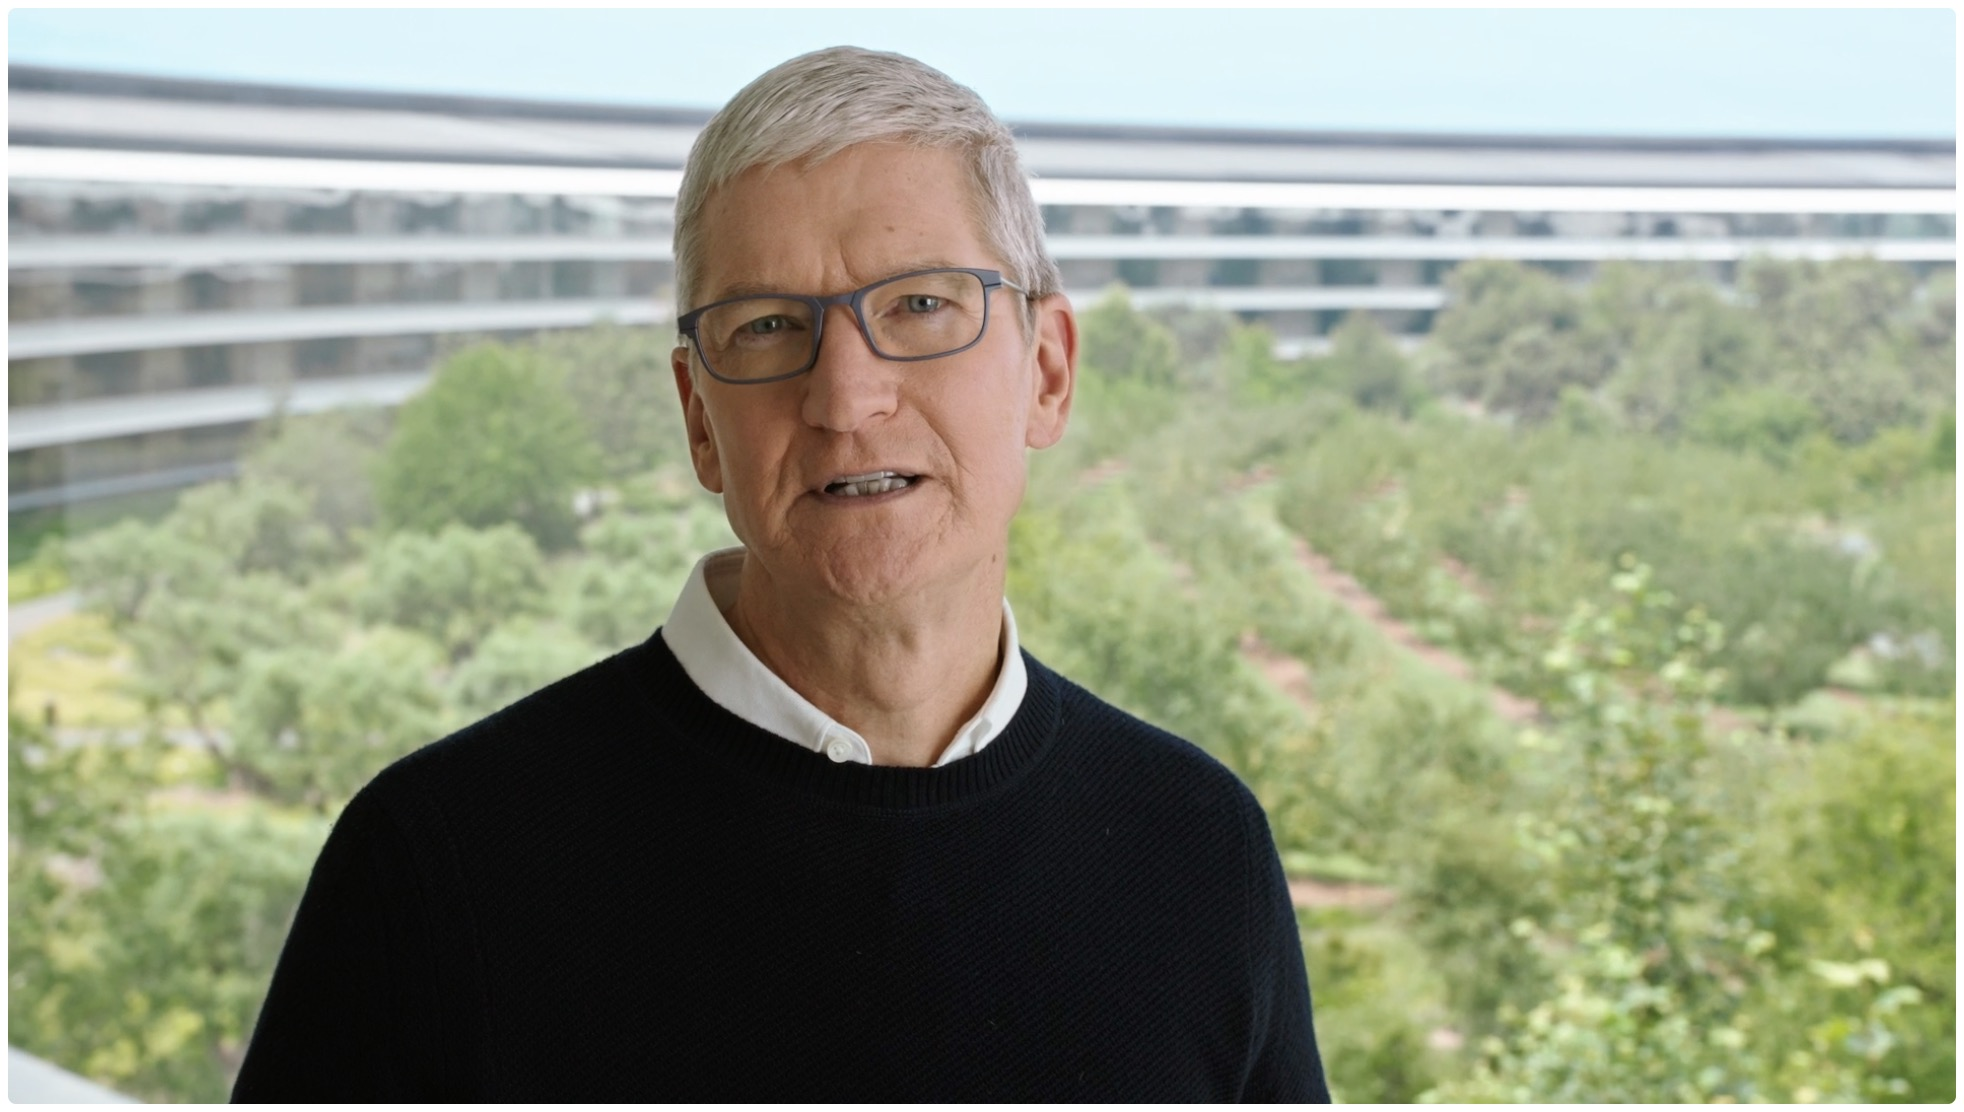 An image showing Tim Cook in the Apple Park headquarters to illustrate the article about last-minute WWDC21 leaks